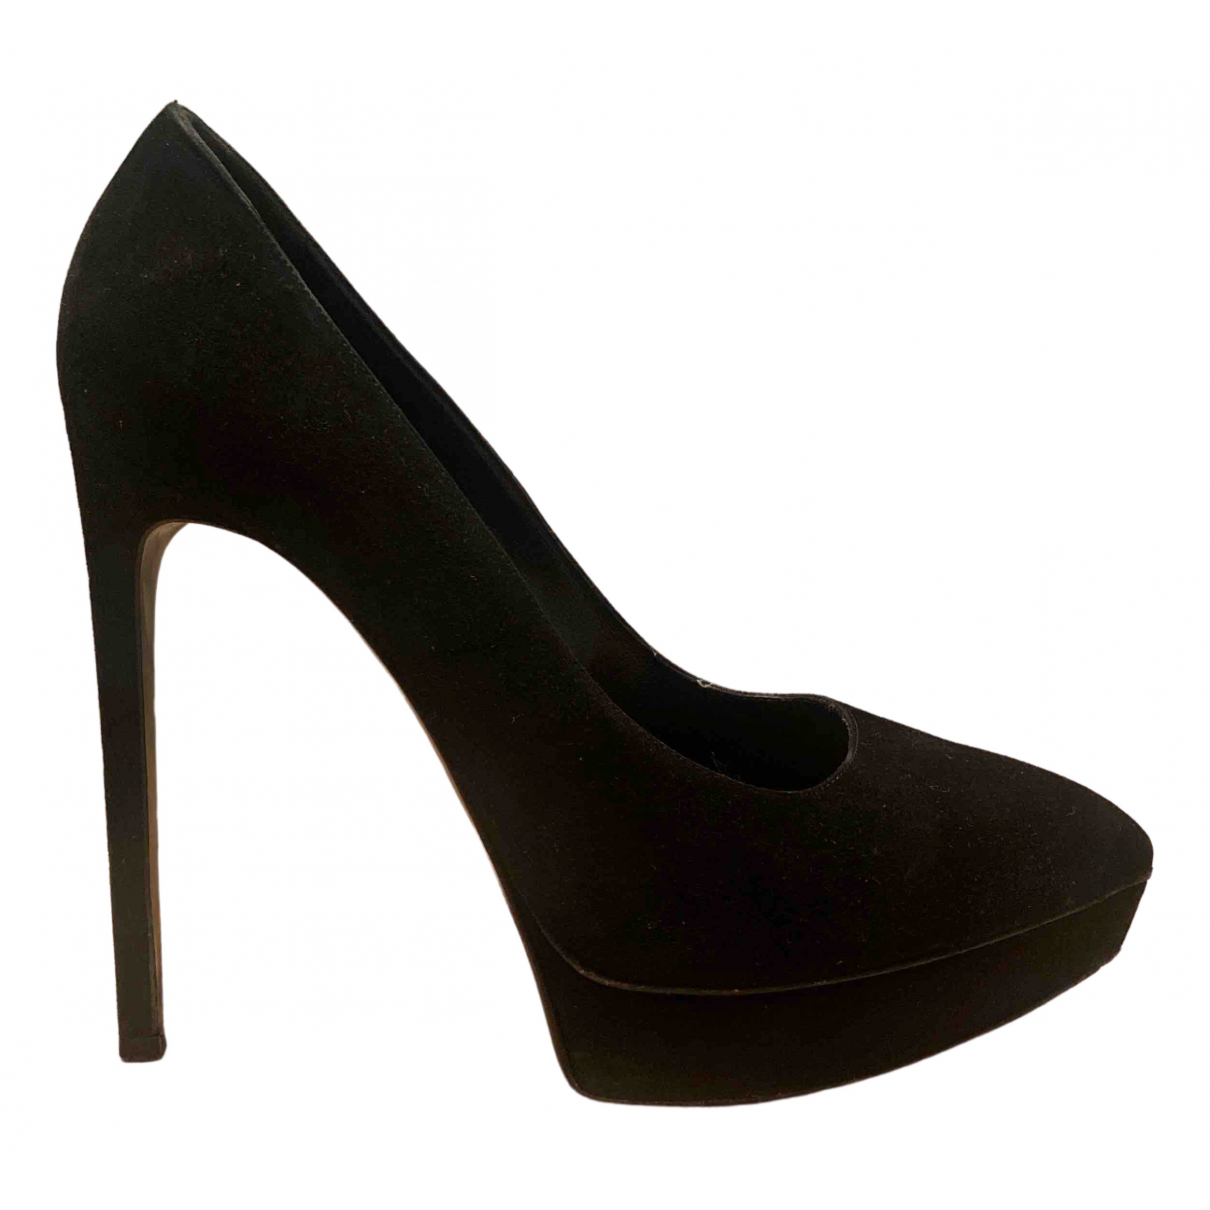 Saint Laurent Janis Black Suede Heels for Women 39.5 EU